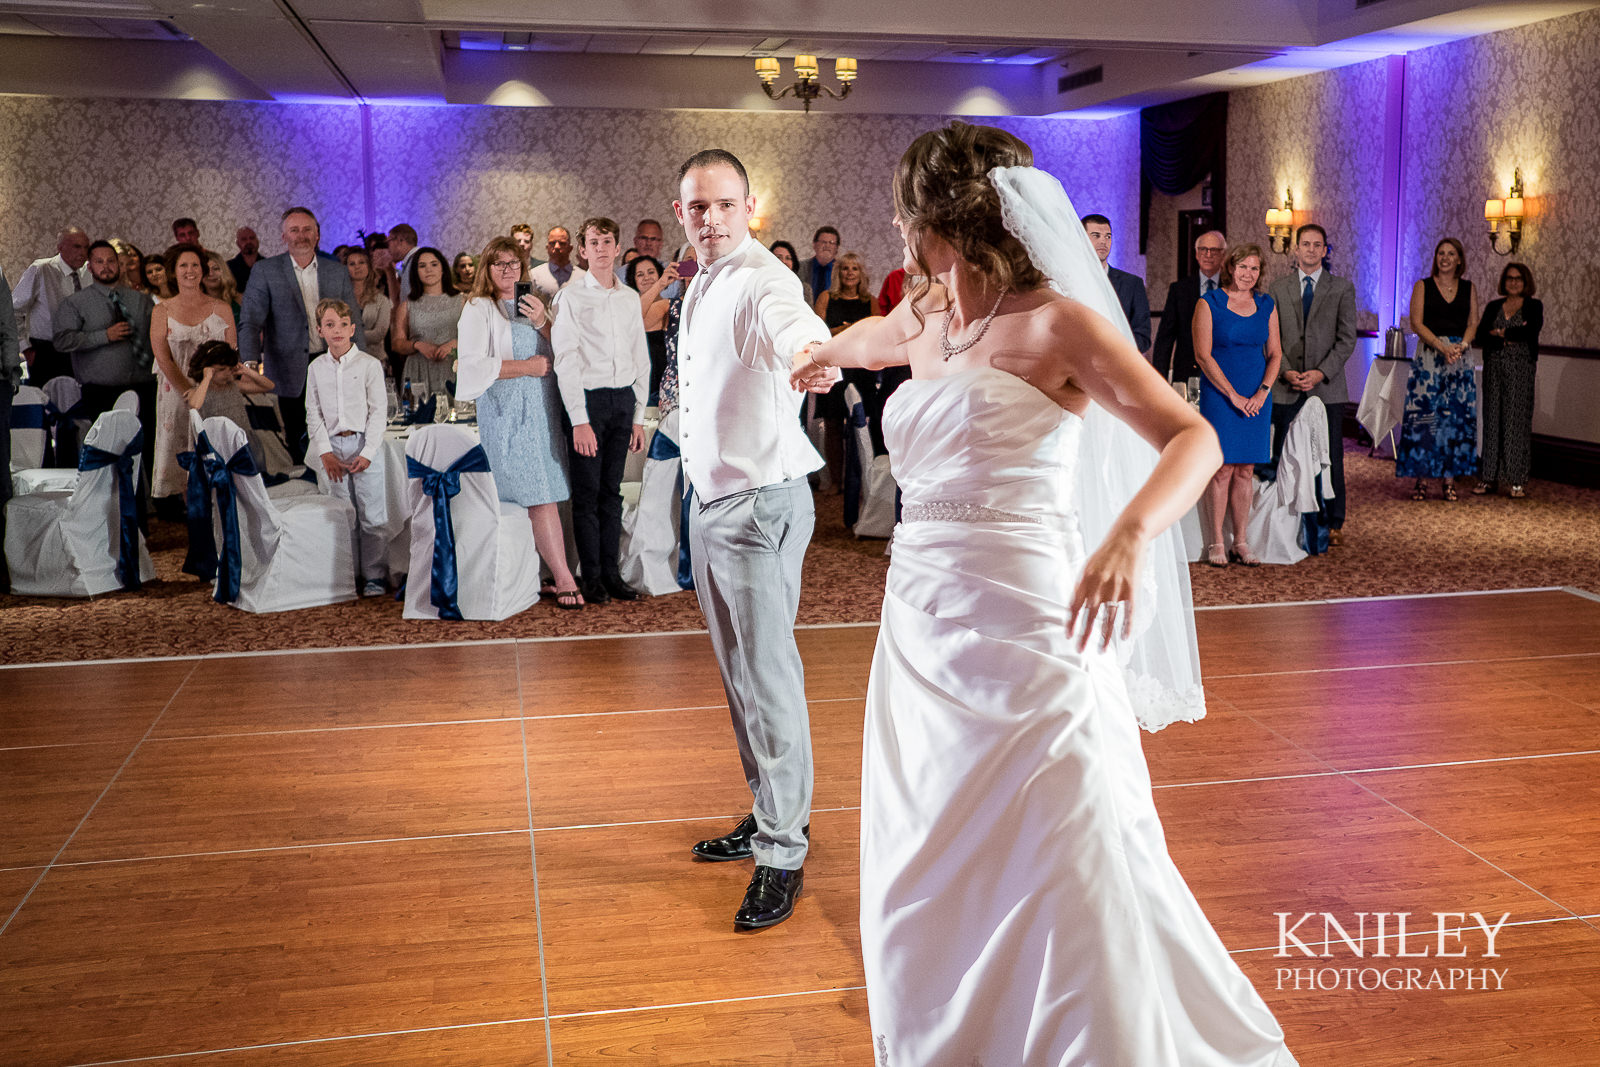 096 - Rochester Riverside Convention Center Wedding Photo - Rocheser NY - XT2A1015.jpg